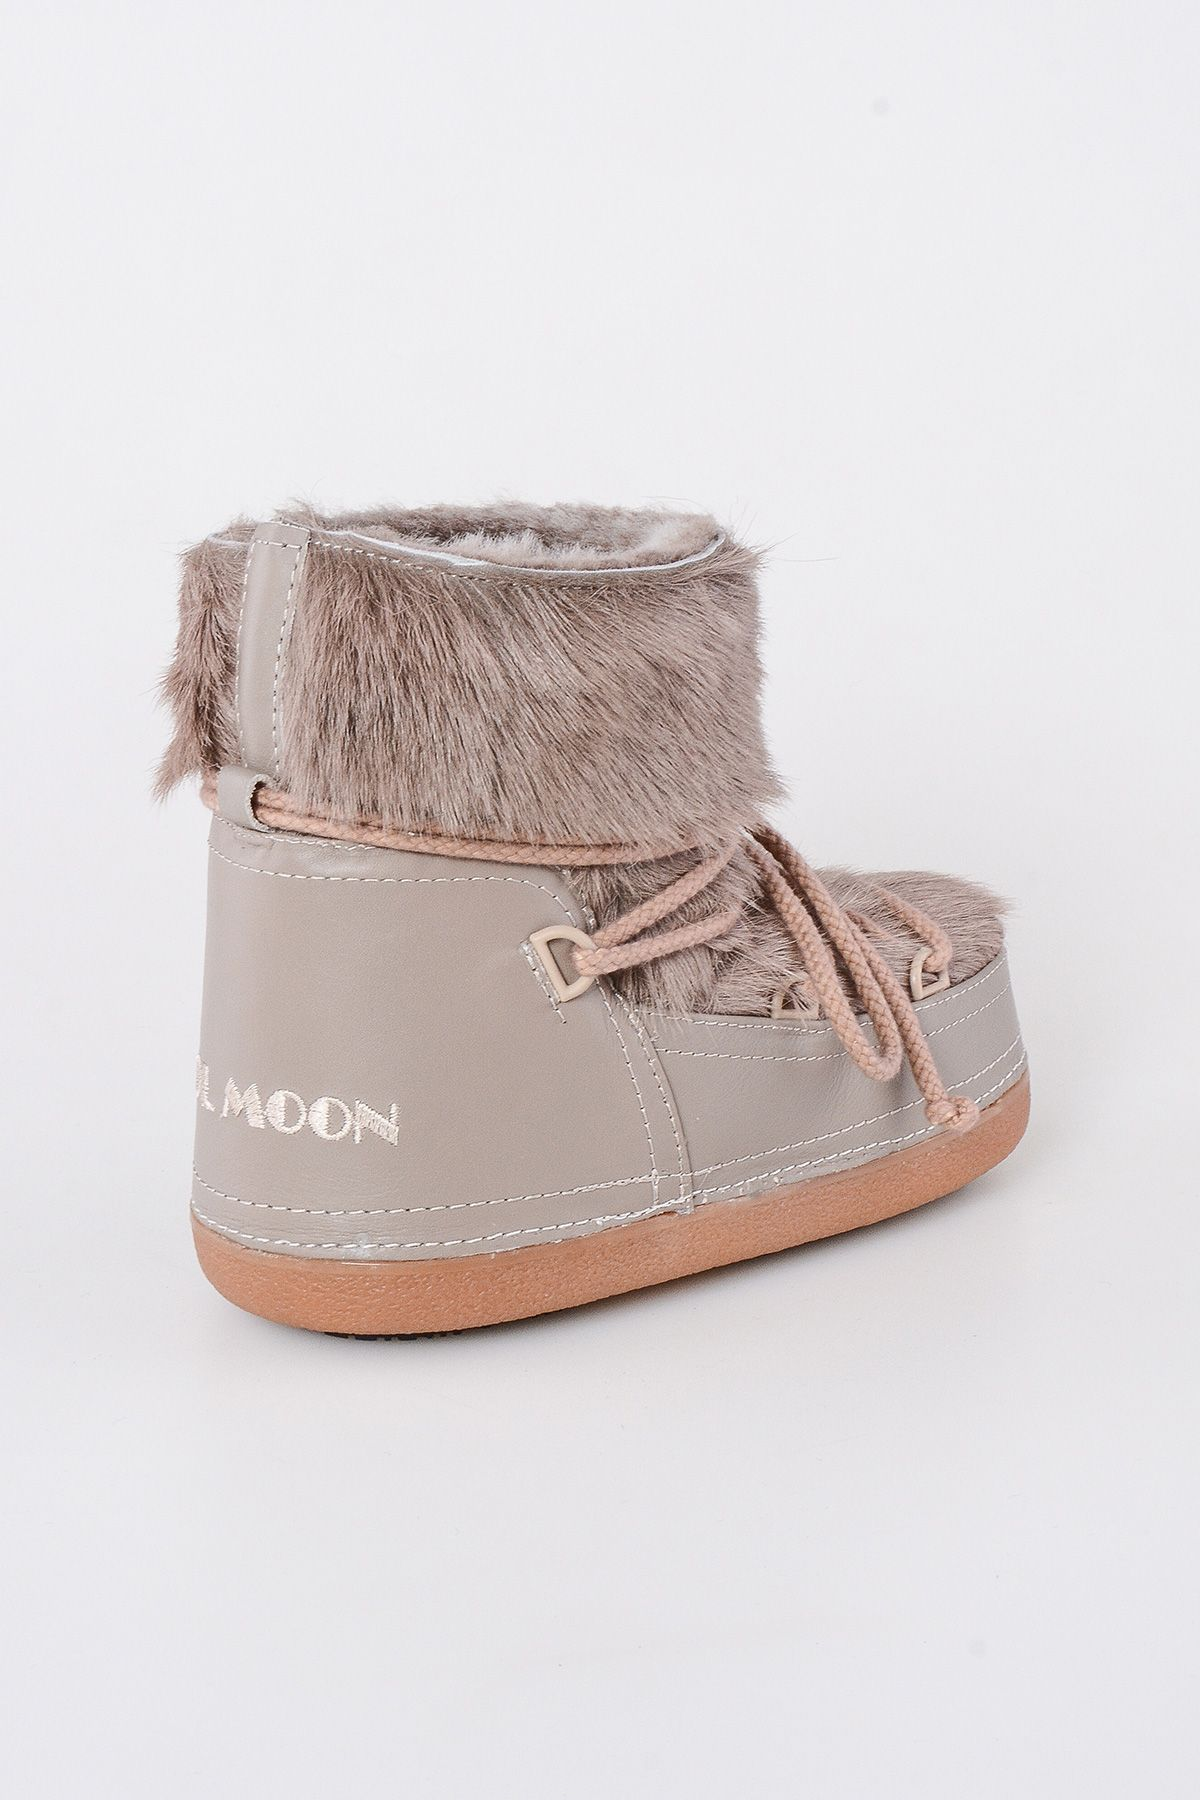 Cool Moon Moonboots From Genuine Sheepskin With Toscana Fur Beige